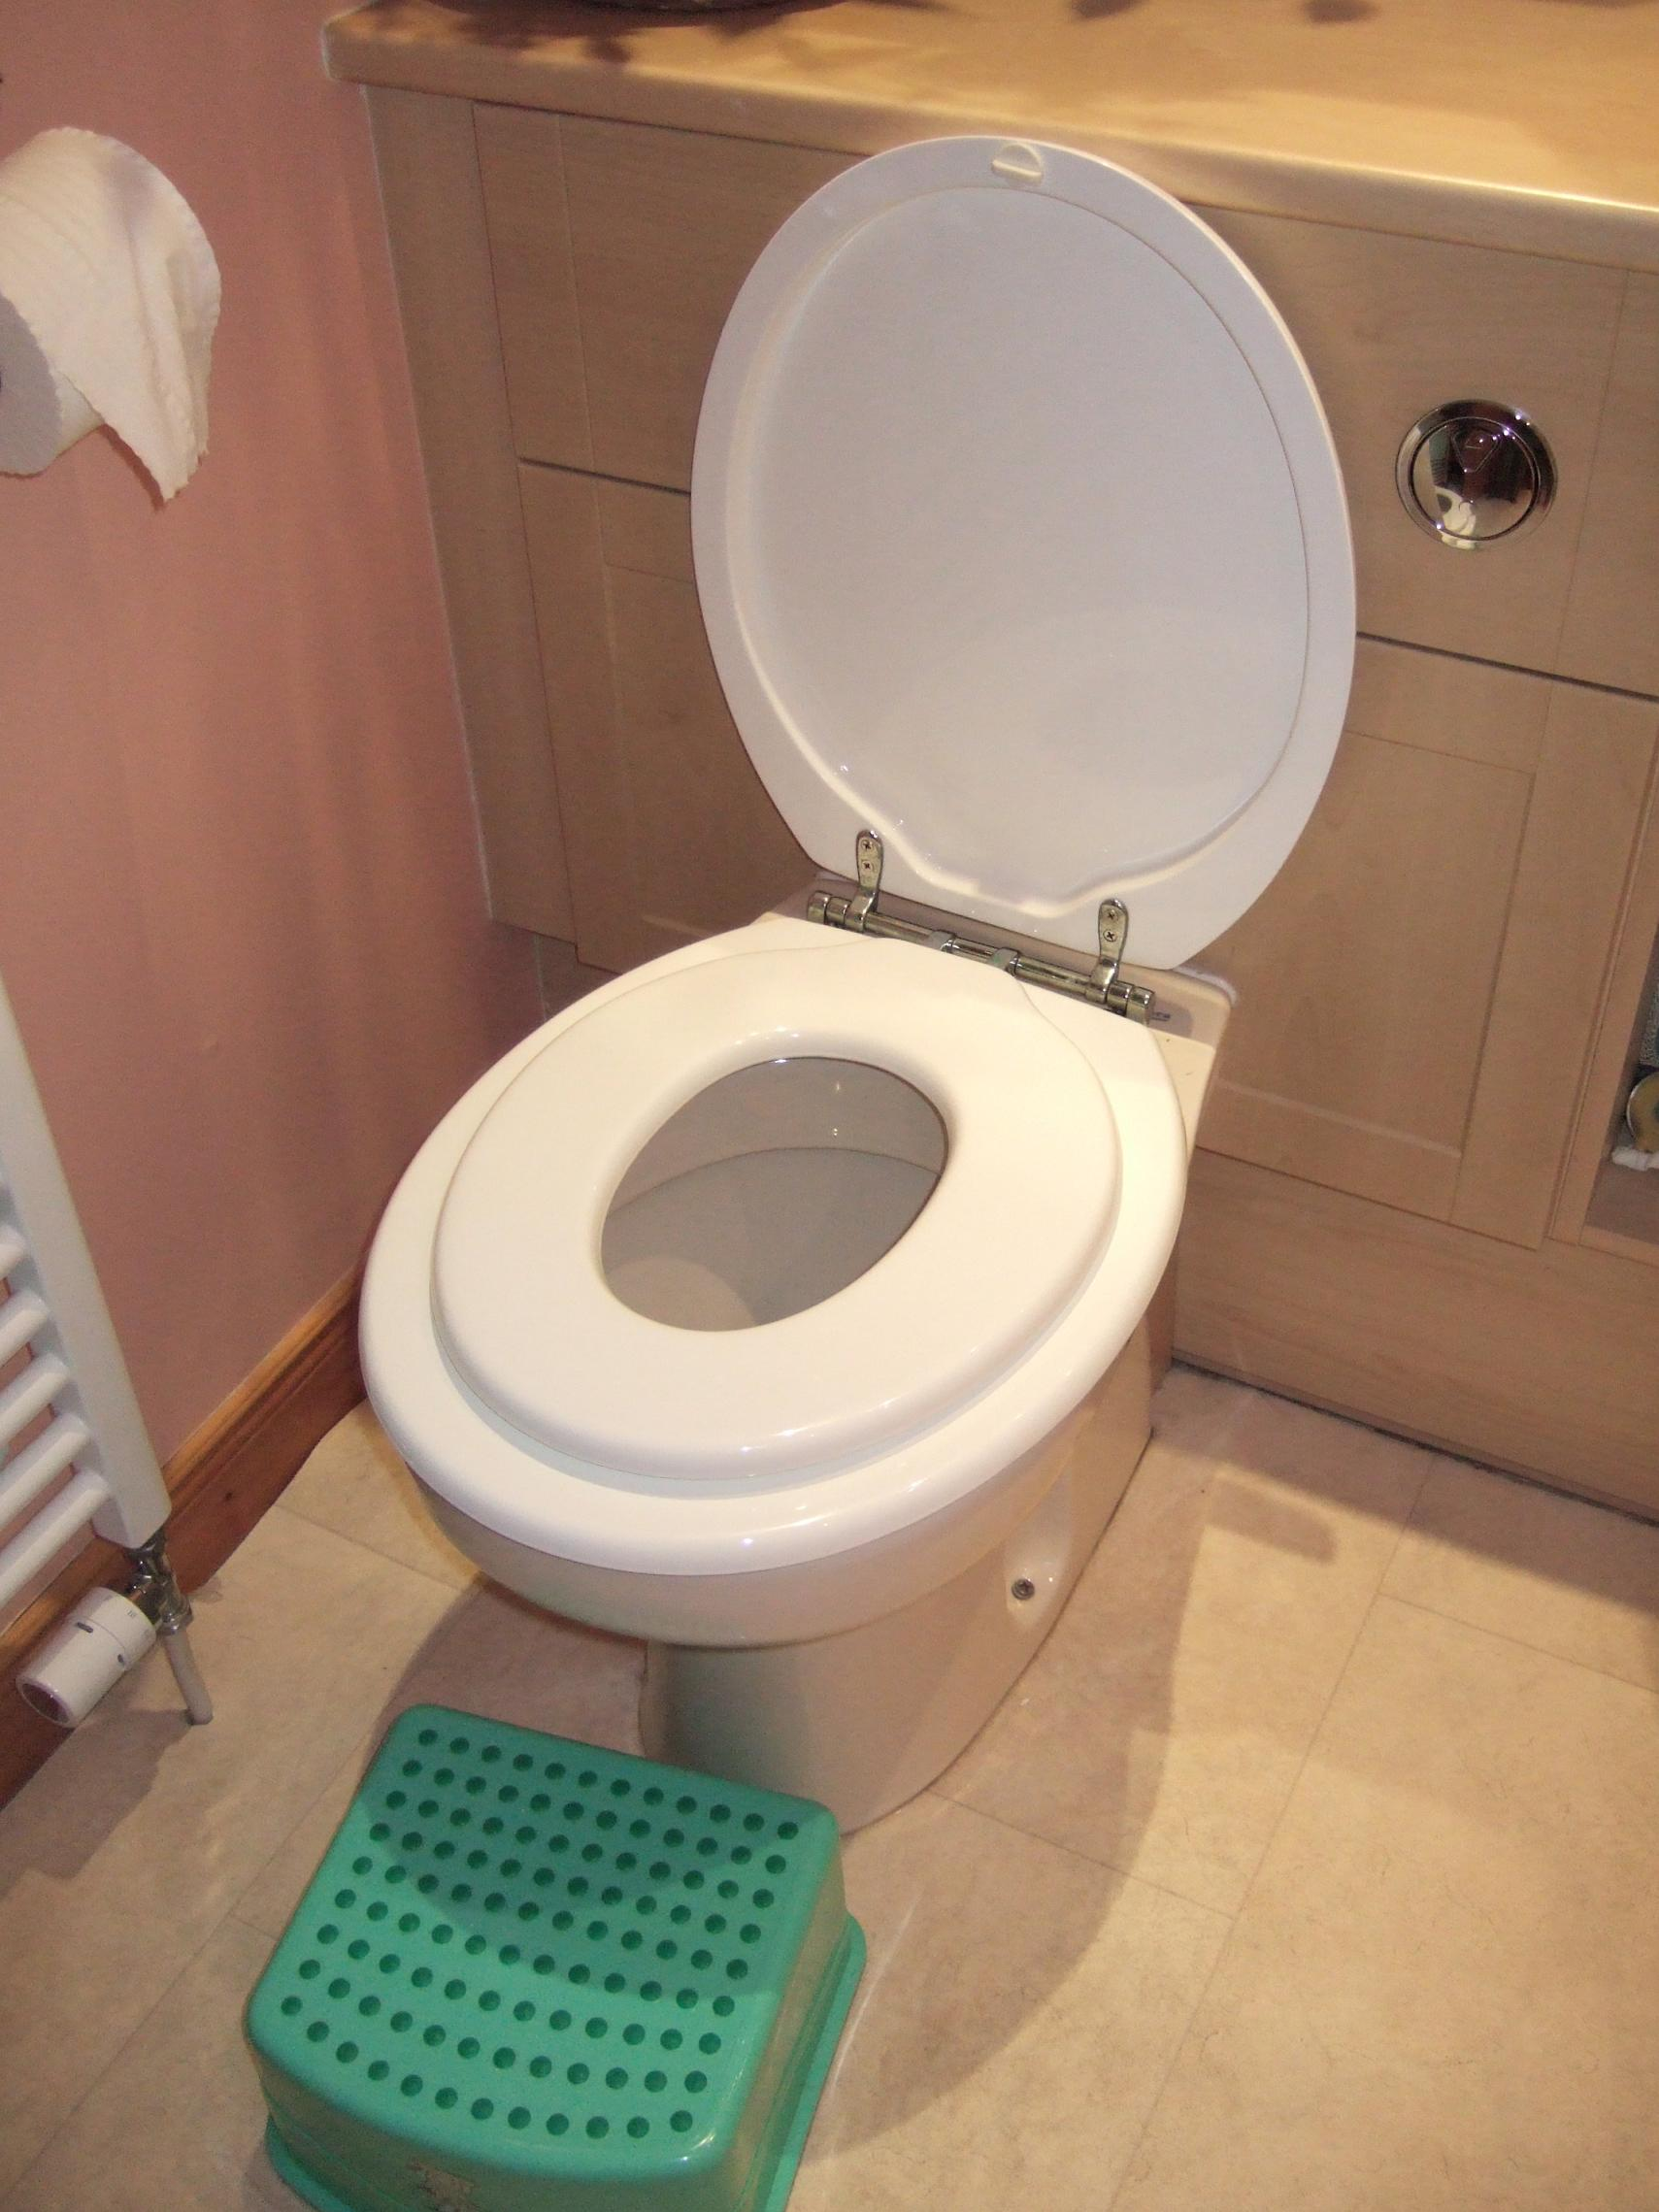 This is the fancy toilet seat got 2 lids to cope with little and big